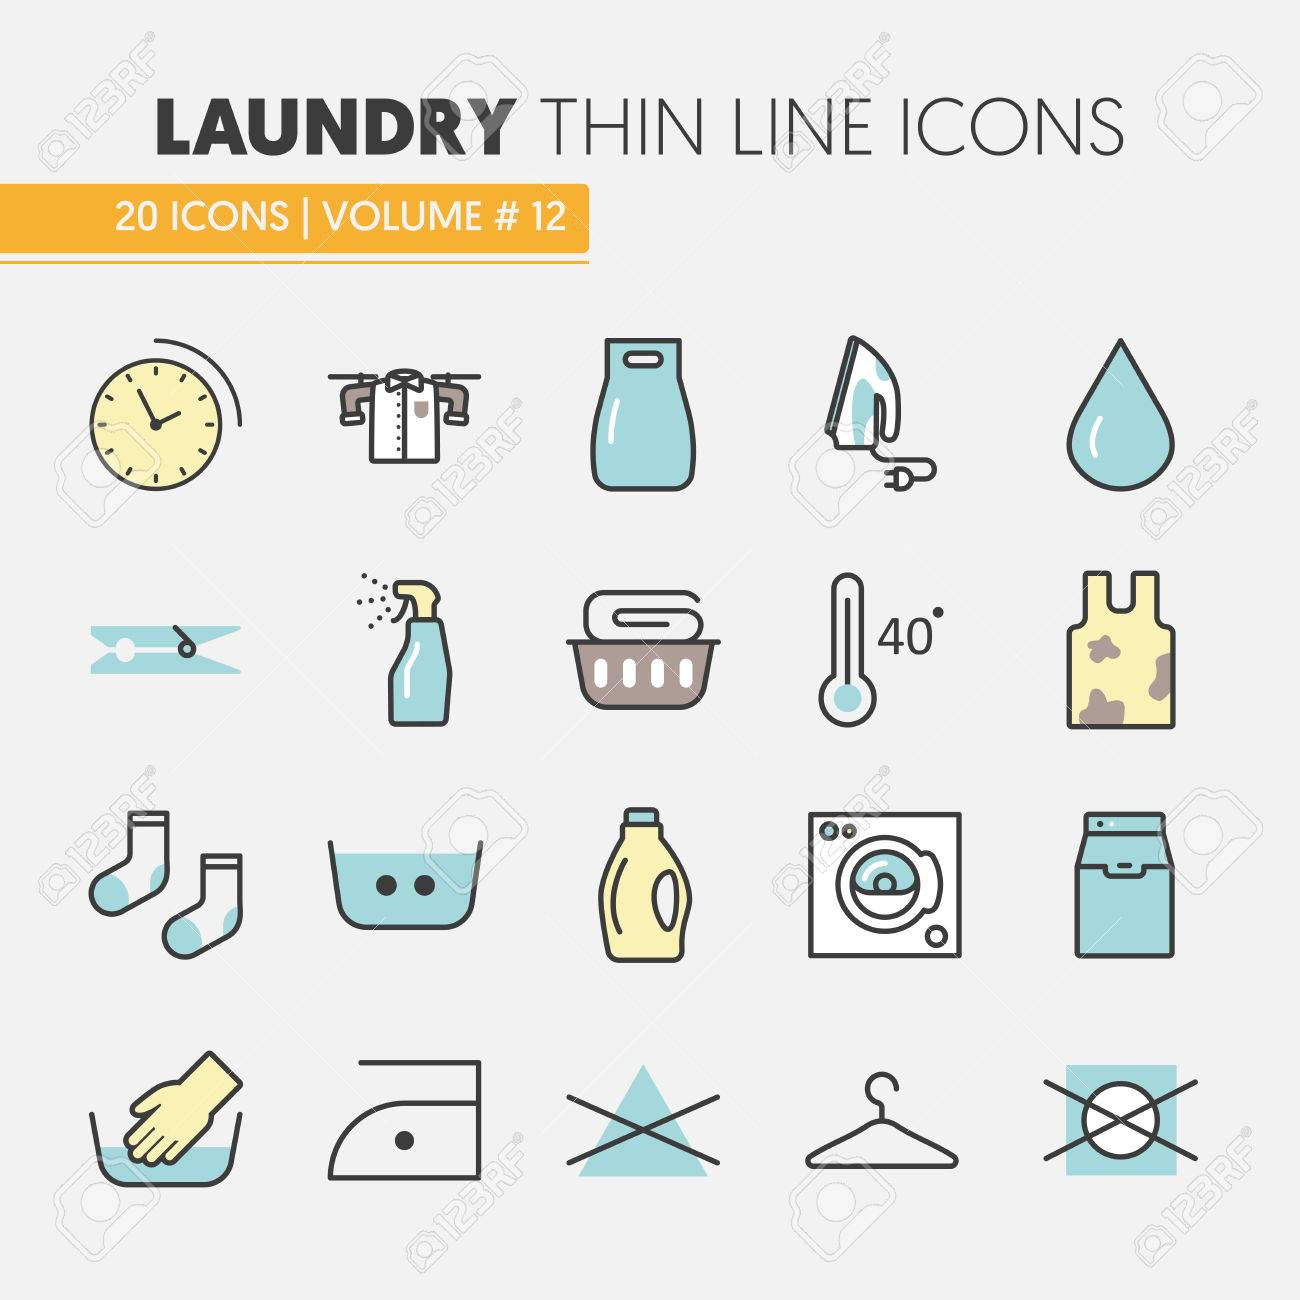 Laundry Service Thin Line Vector Icons Set with Laundrette Elements - 66573459